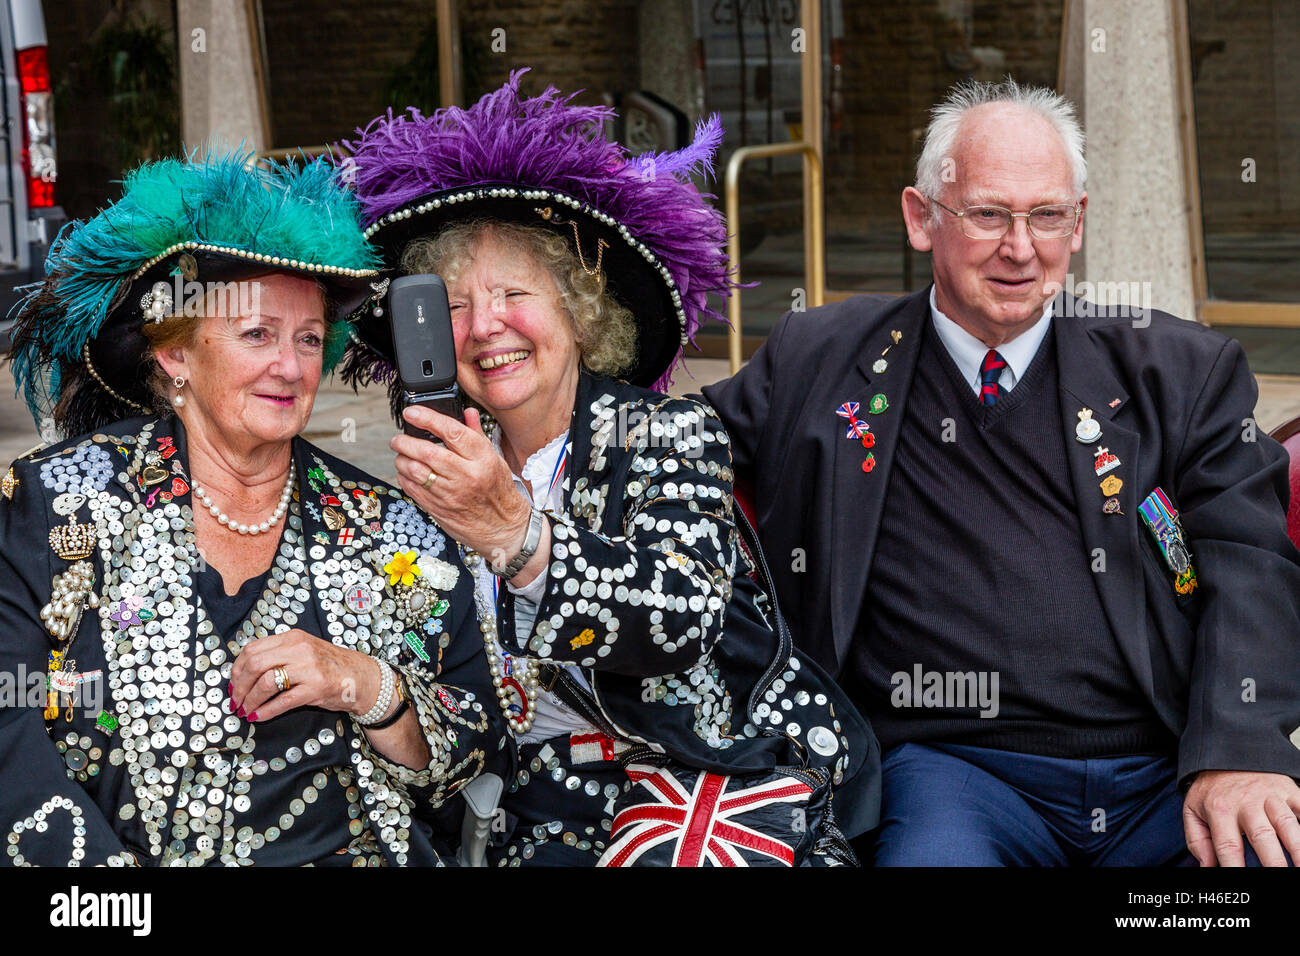 Two Pearly Queens Pose For A Selfie At The Pearly Kings and Queens' Harvest Festival, The Guildhall Yard, London, Stock Photo